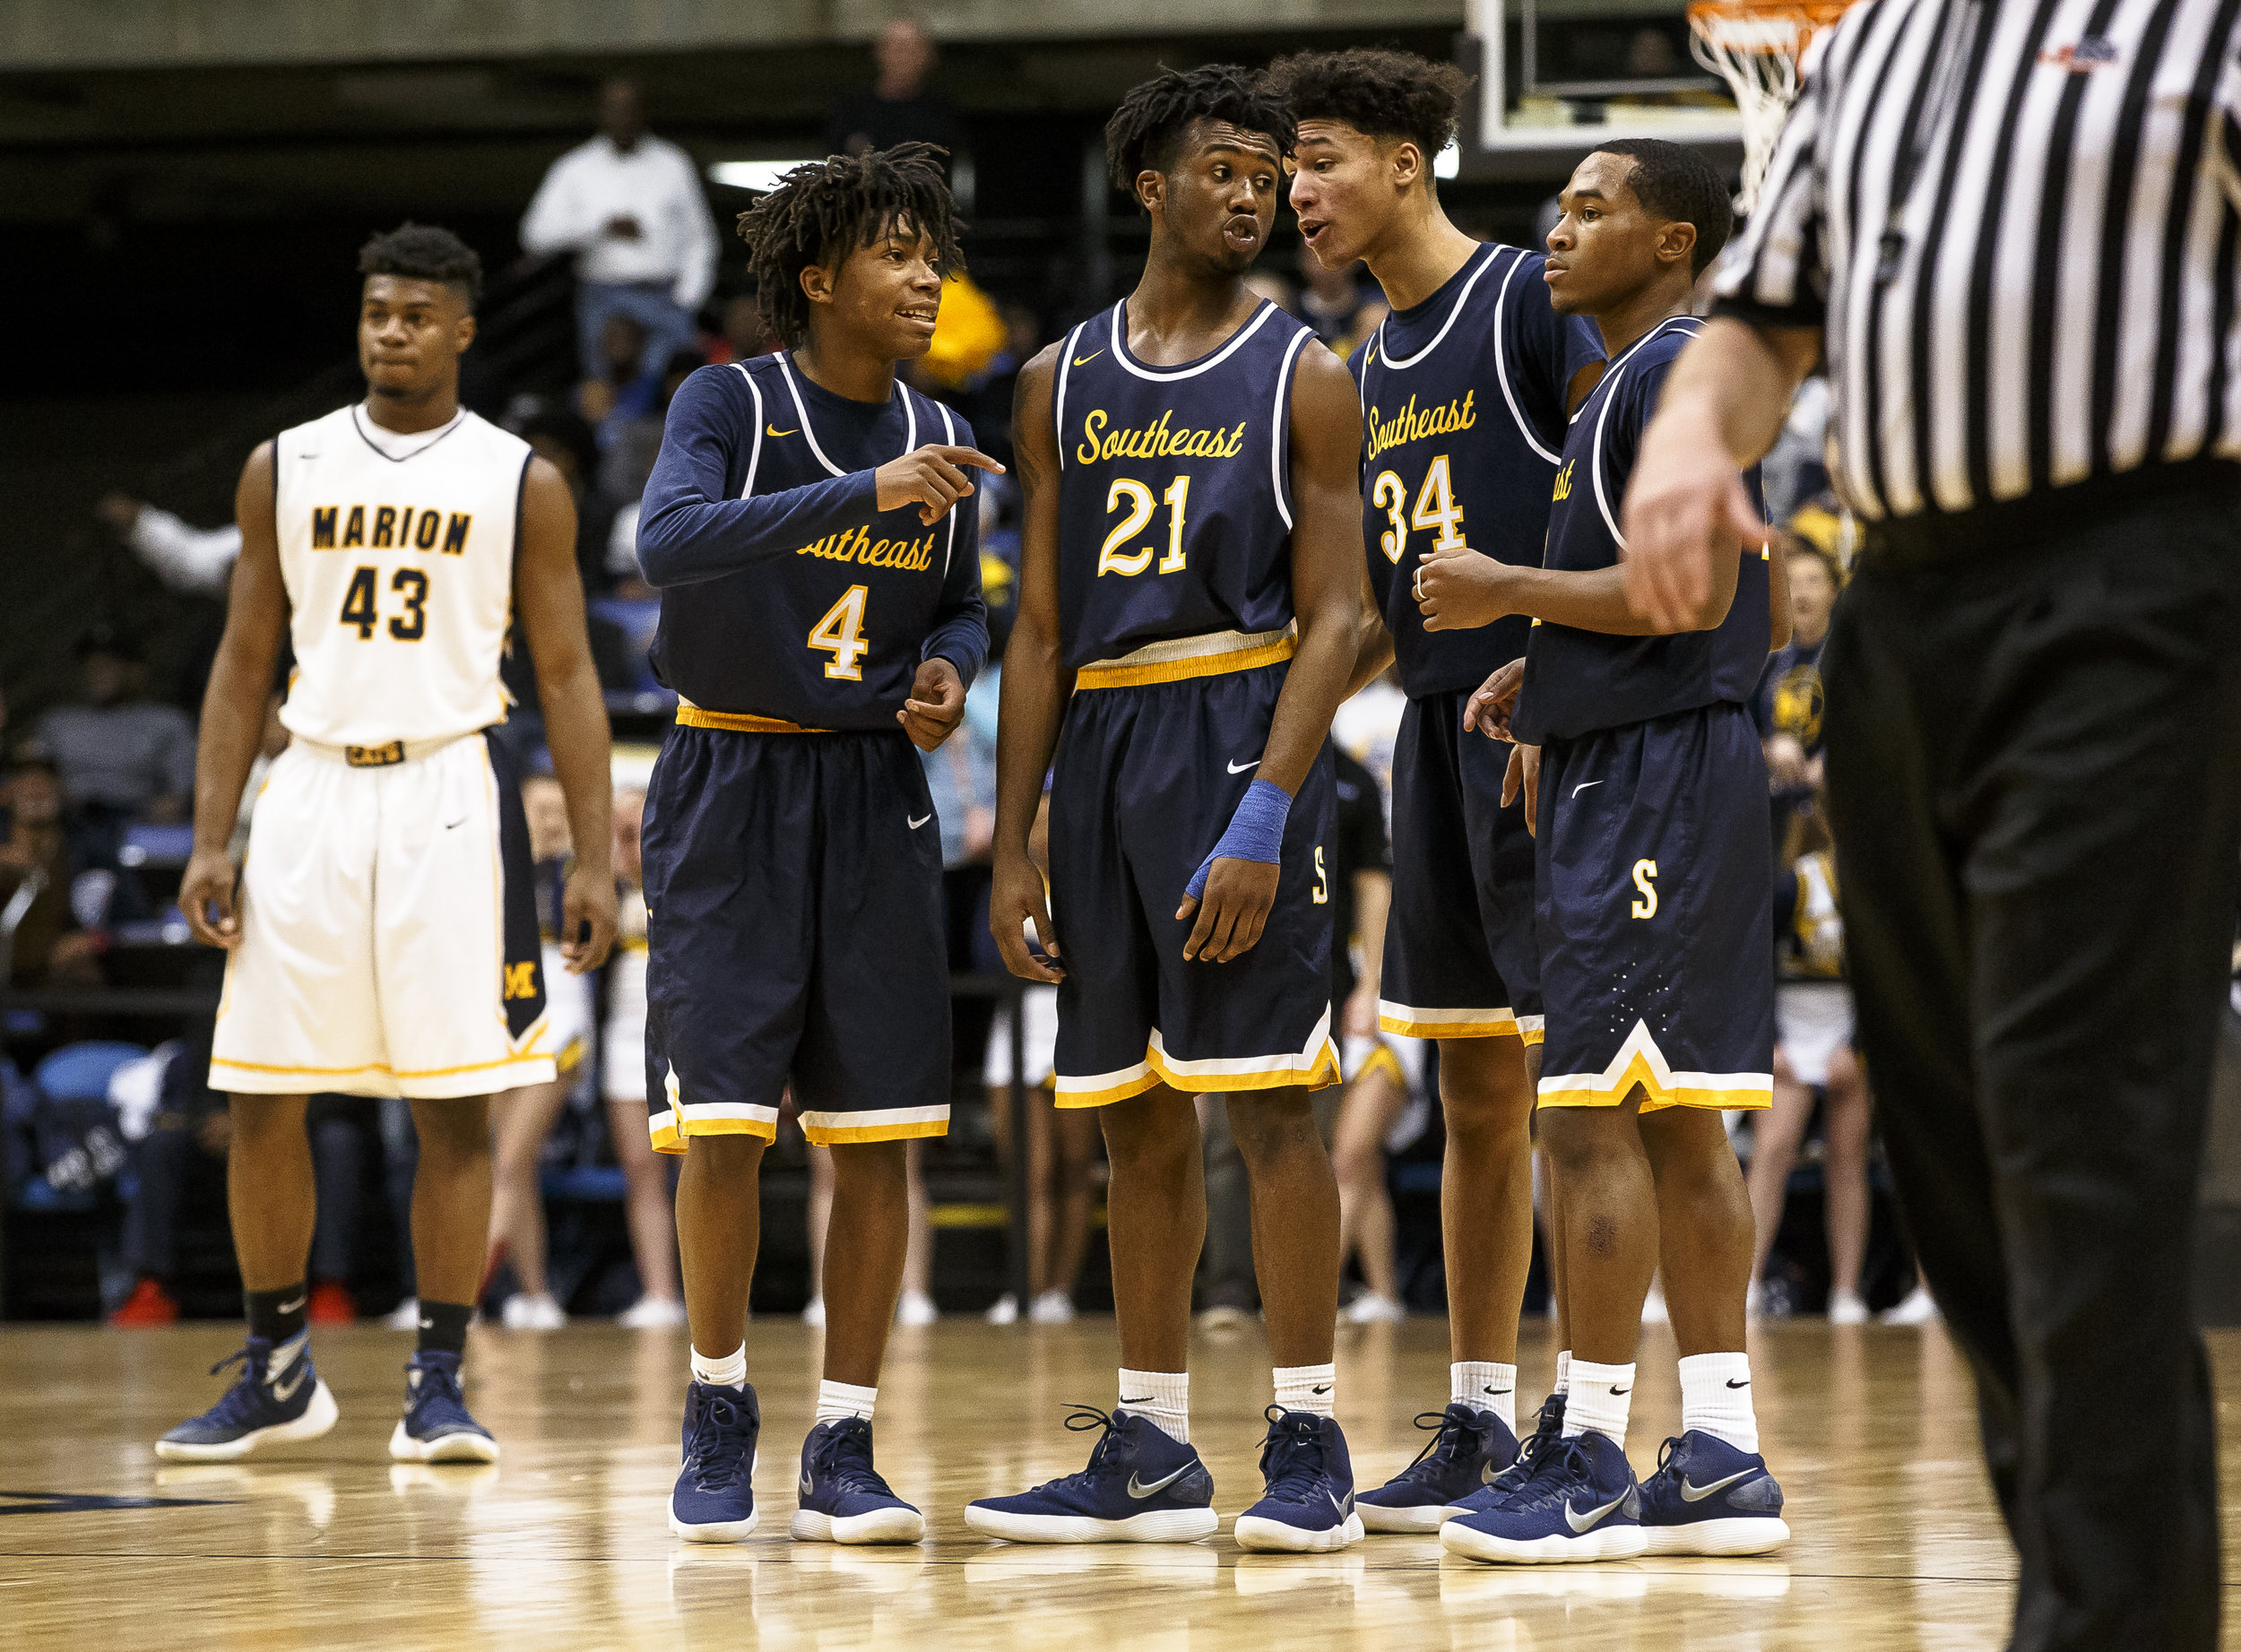 Southeast's Anthony Fairlee (21) and the Spartans huddle together after an intentional foul call against Marion in the second half during the Class 3A Springfield Supersectional at the Bank of Springfield Center, Tuesday, March 13, 2018, in Springfield, Ill. [Justin L. Fowler/The State Journal-Register]